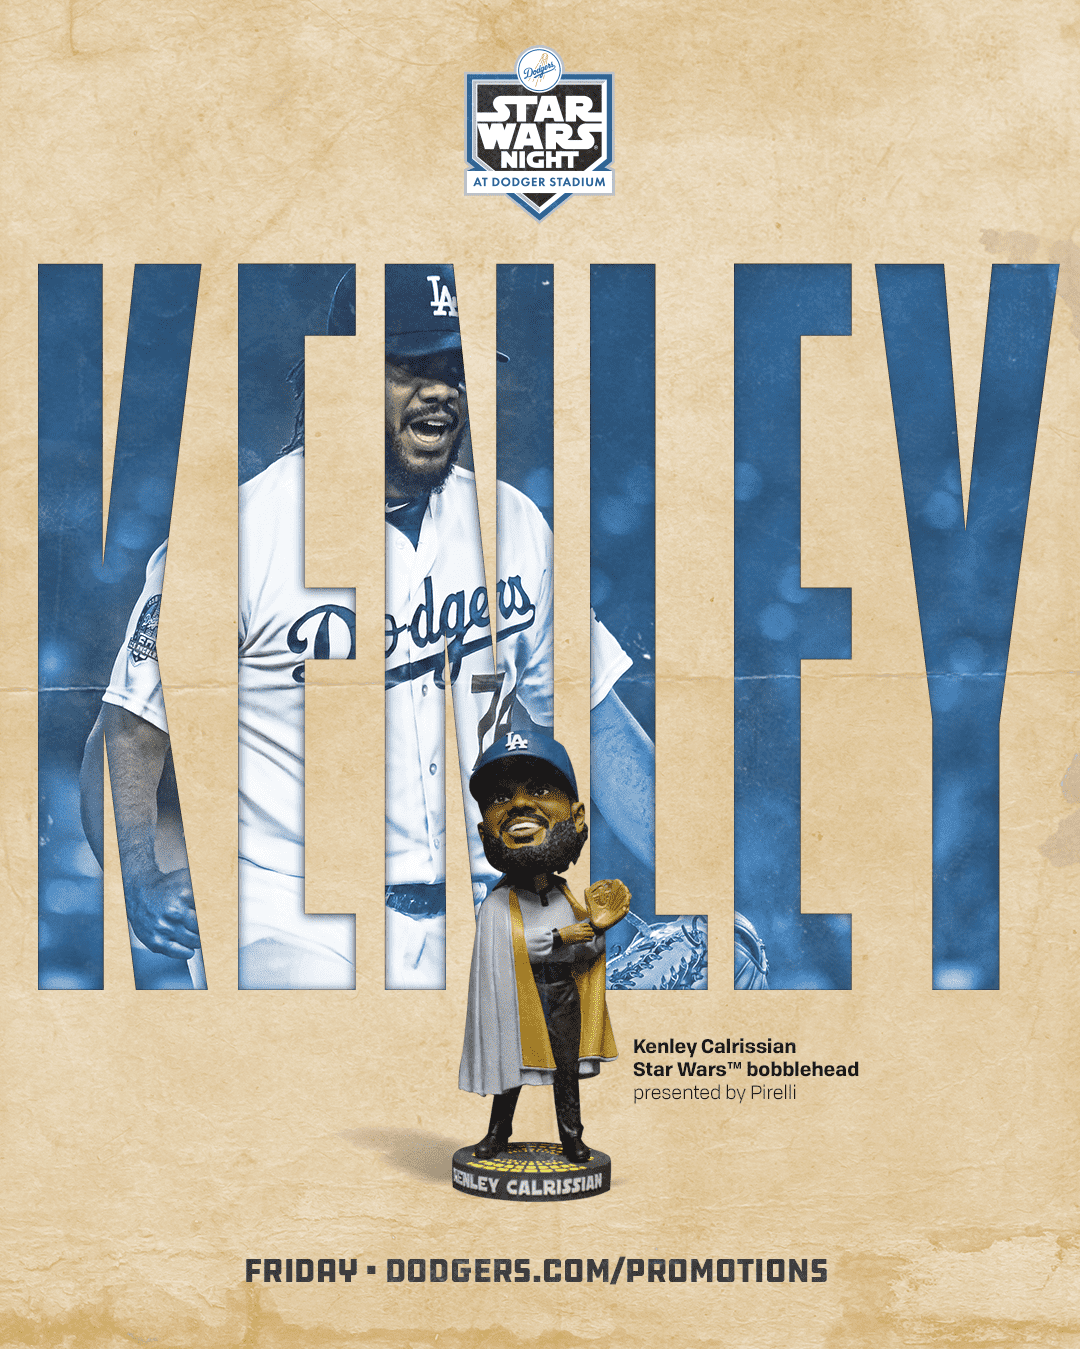 Los Angeles Dodgers SOLO movie poster inspiration